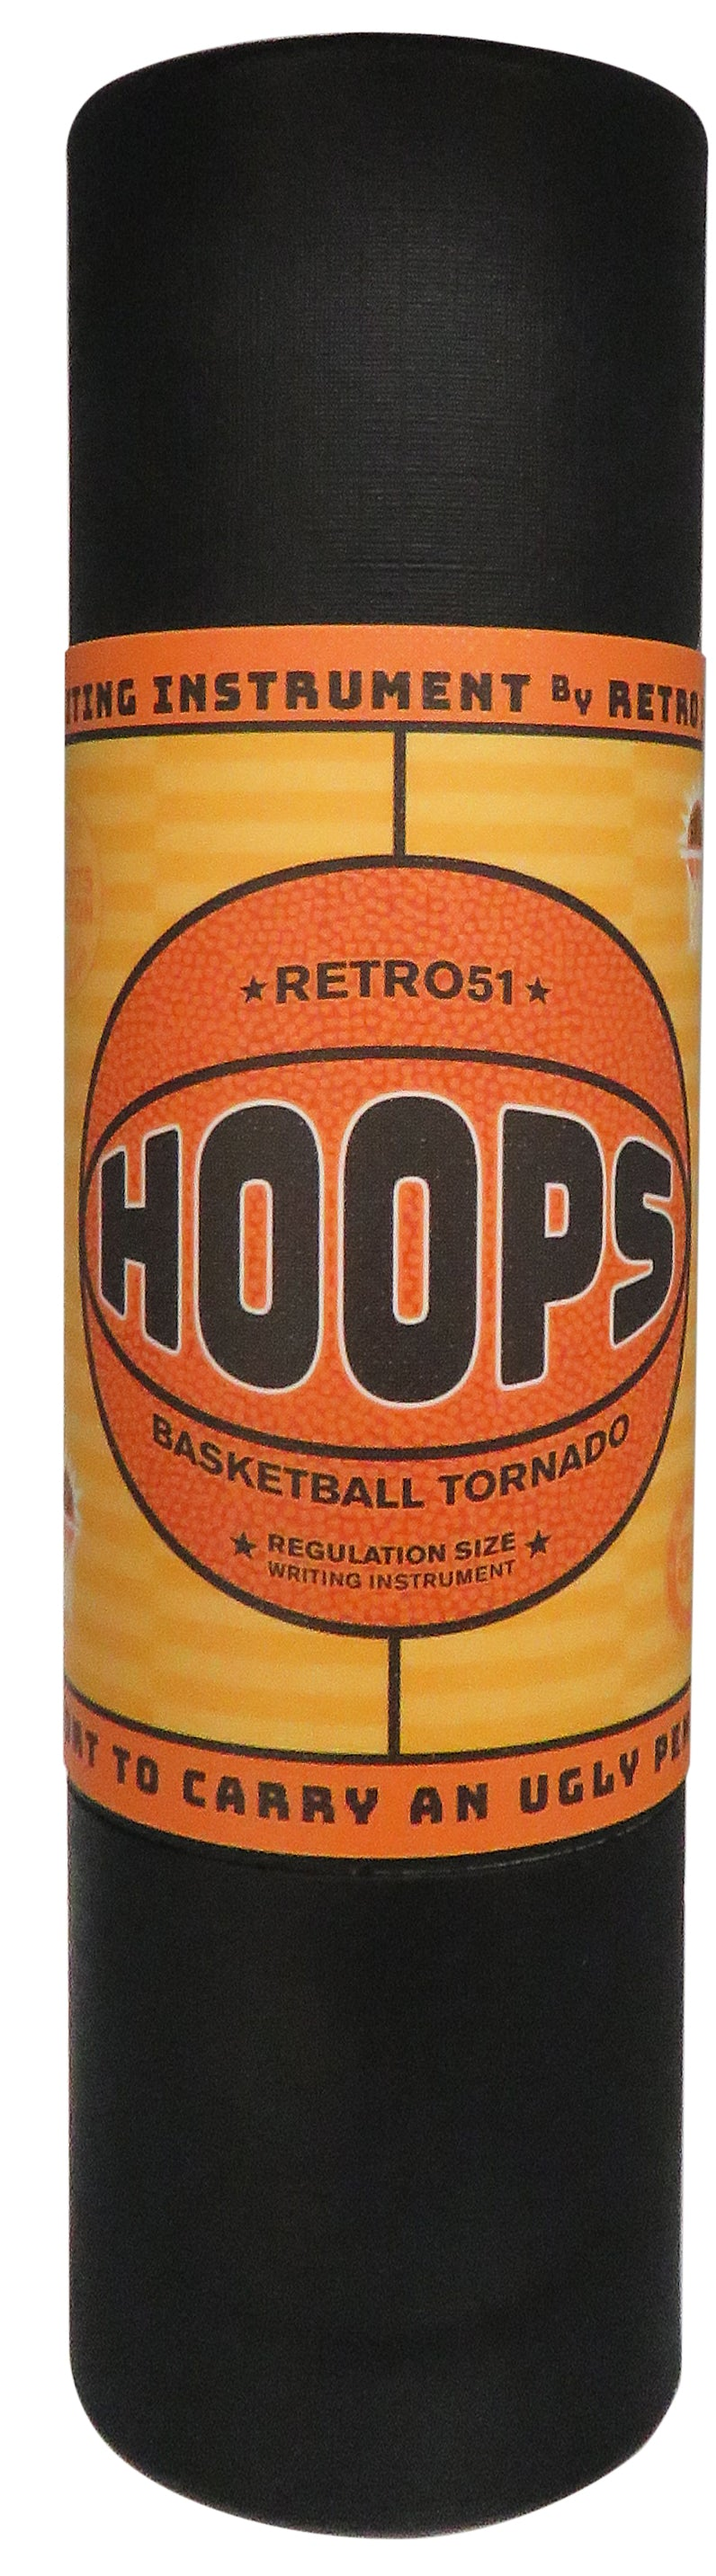 Retro 1951 Sports Edition Hoops Basketball